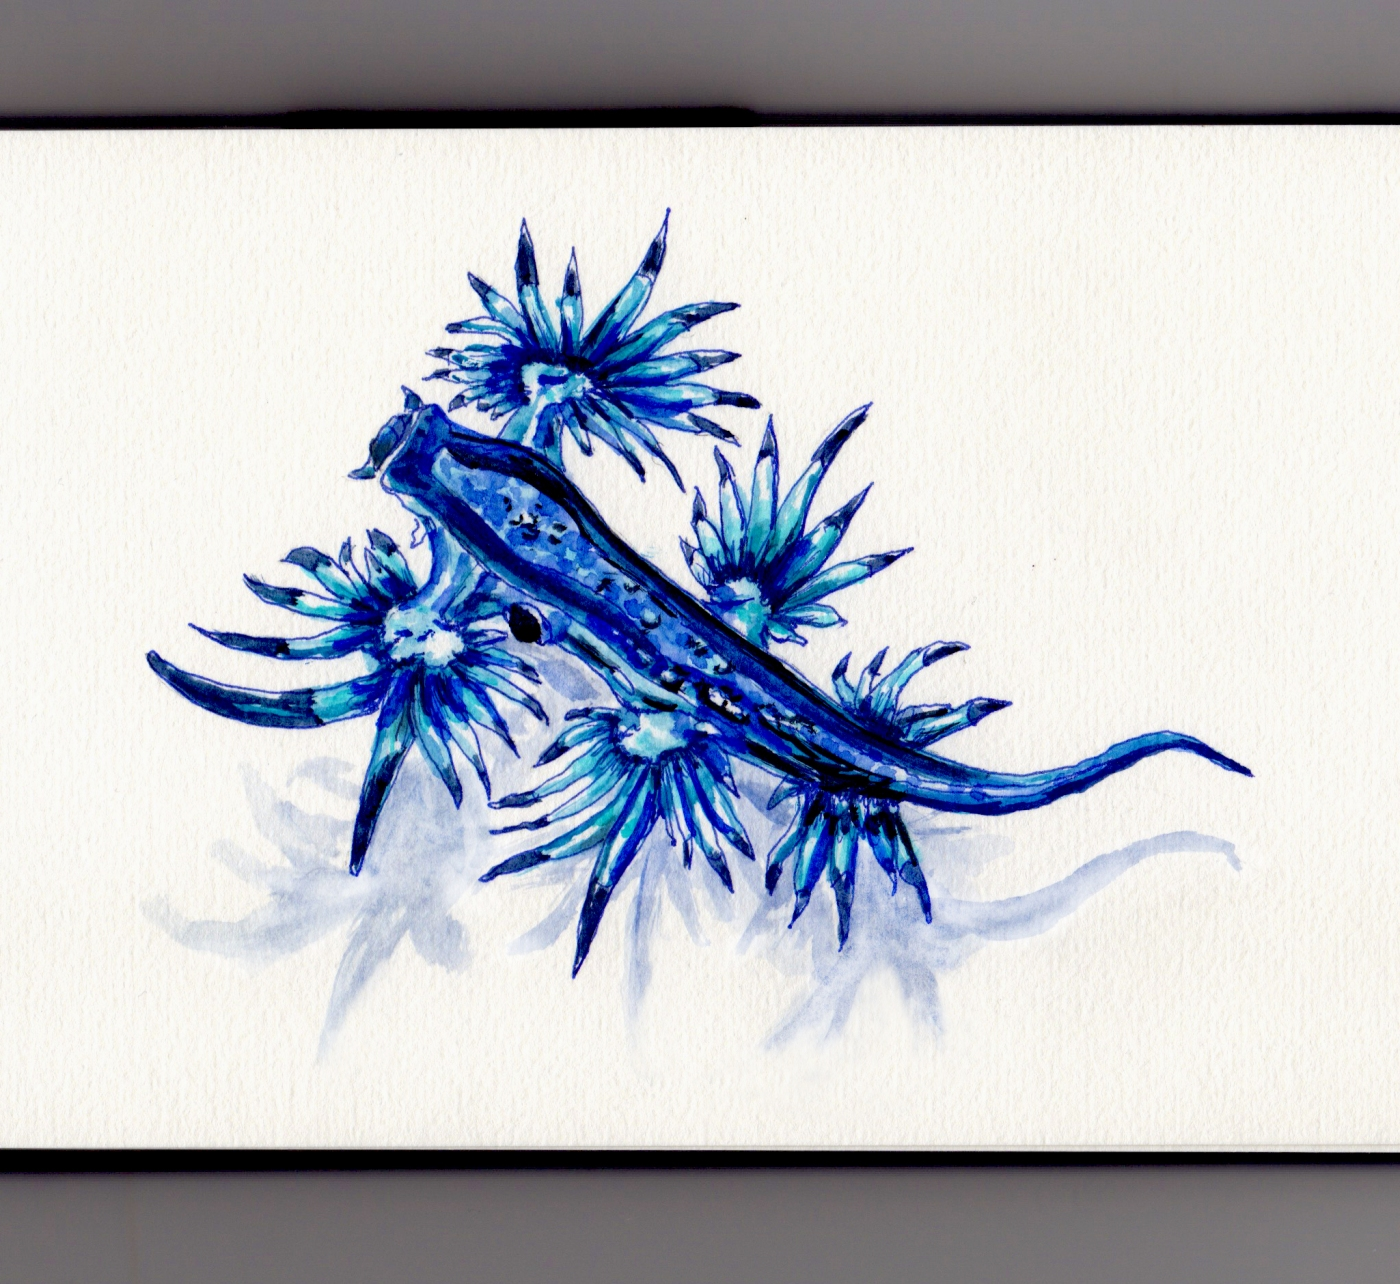 Glaucus Atlanticus Doodlewash Blue sea swallow, blue angel, blue glaucus, blue dragon, blue sea slug and blue ocean slug watercolor illustration